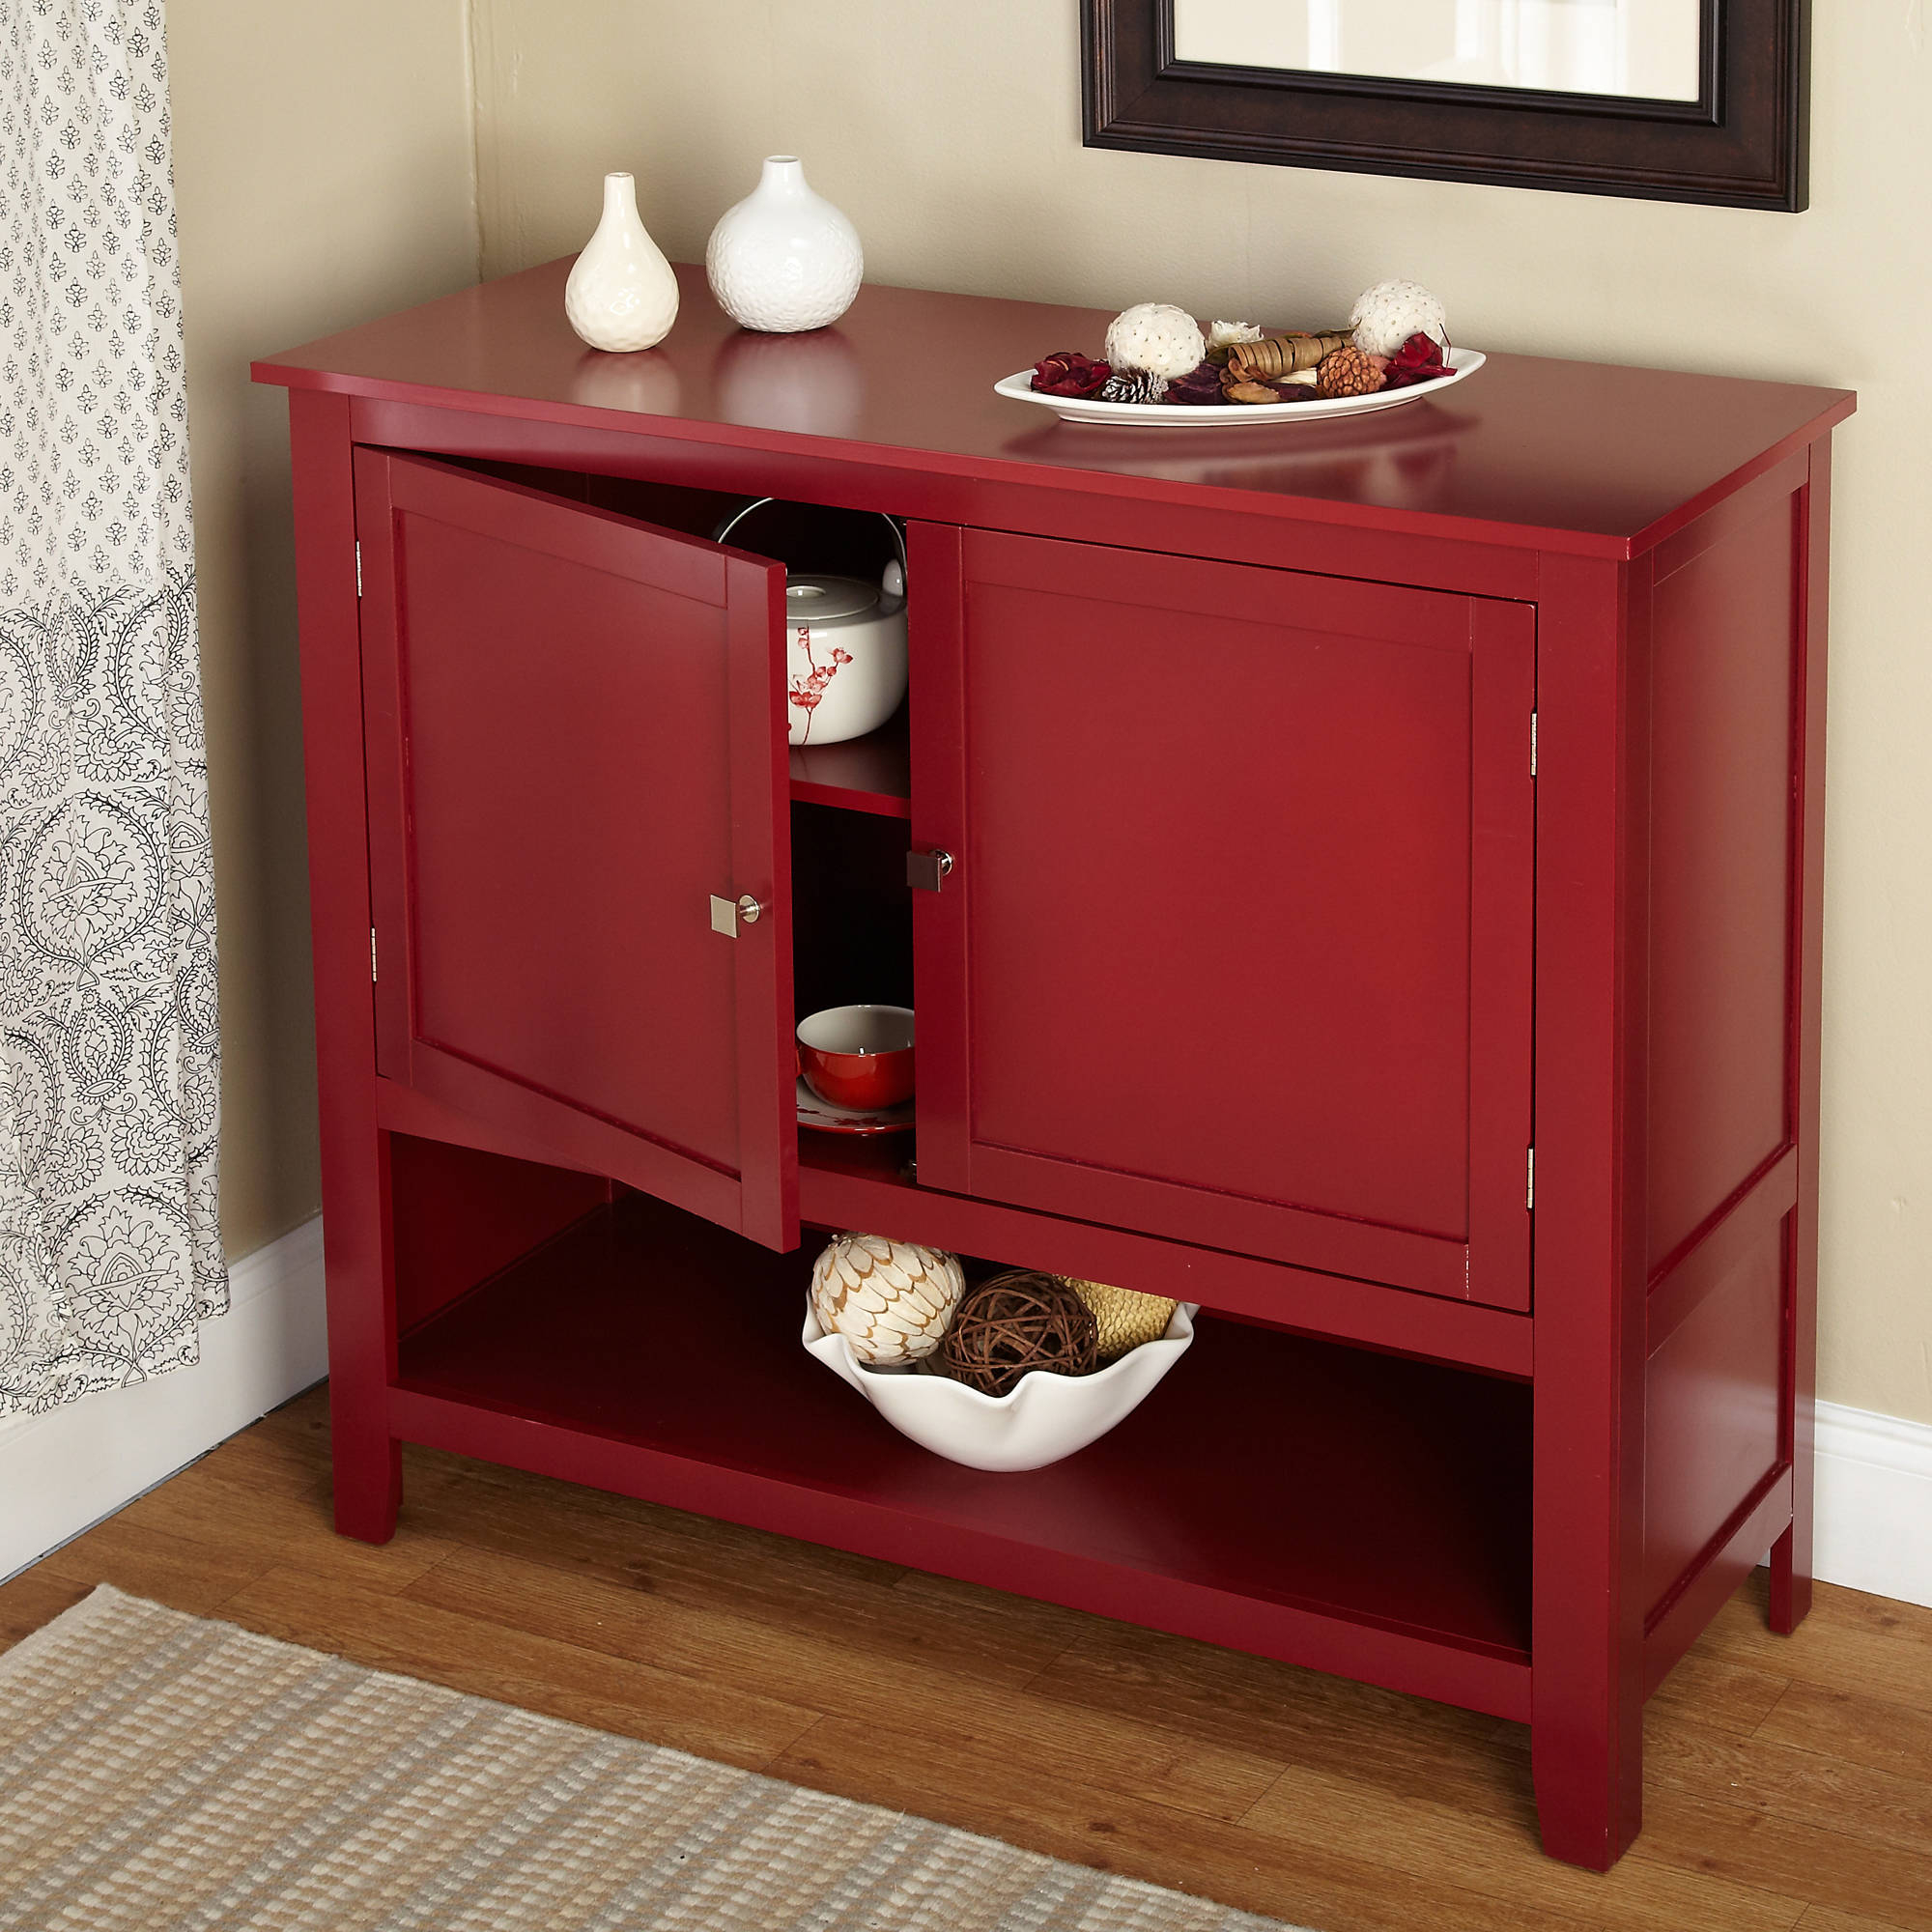 Details About Red Buffet Cabinet Kitchen Storage Shelf With Doors Table  Furniture Dining Room Within Contemporary Wooden Buffets With One Side Door Storage Cabinets And Two Drawers (View 3 of 20)